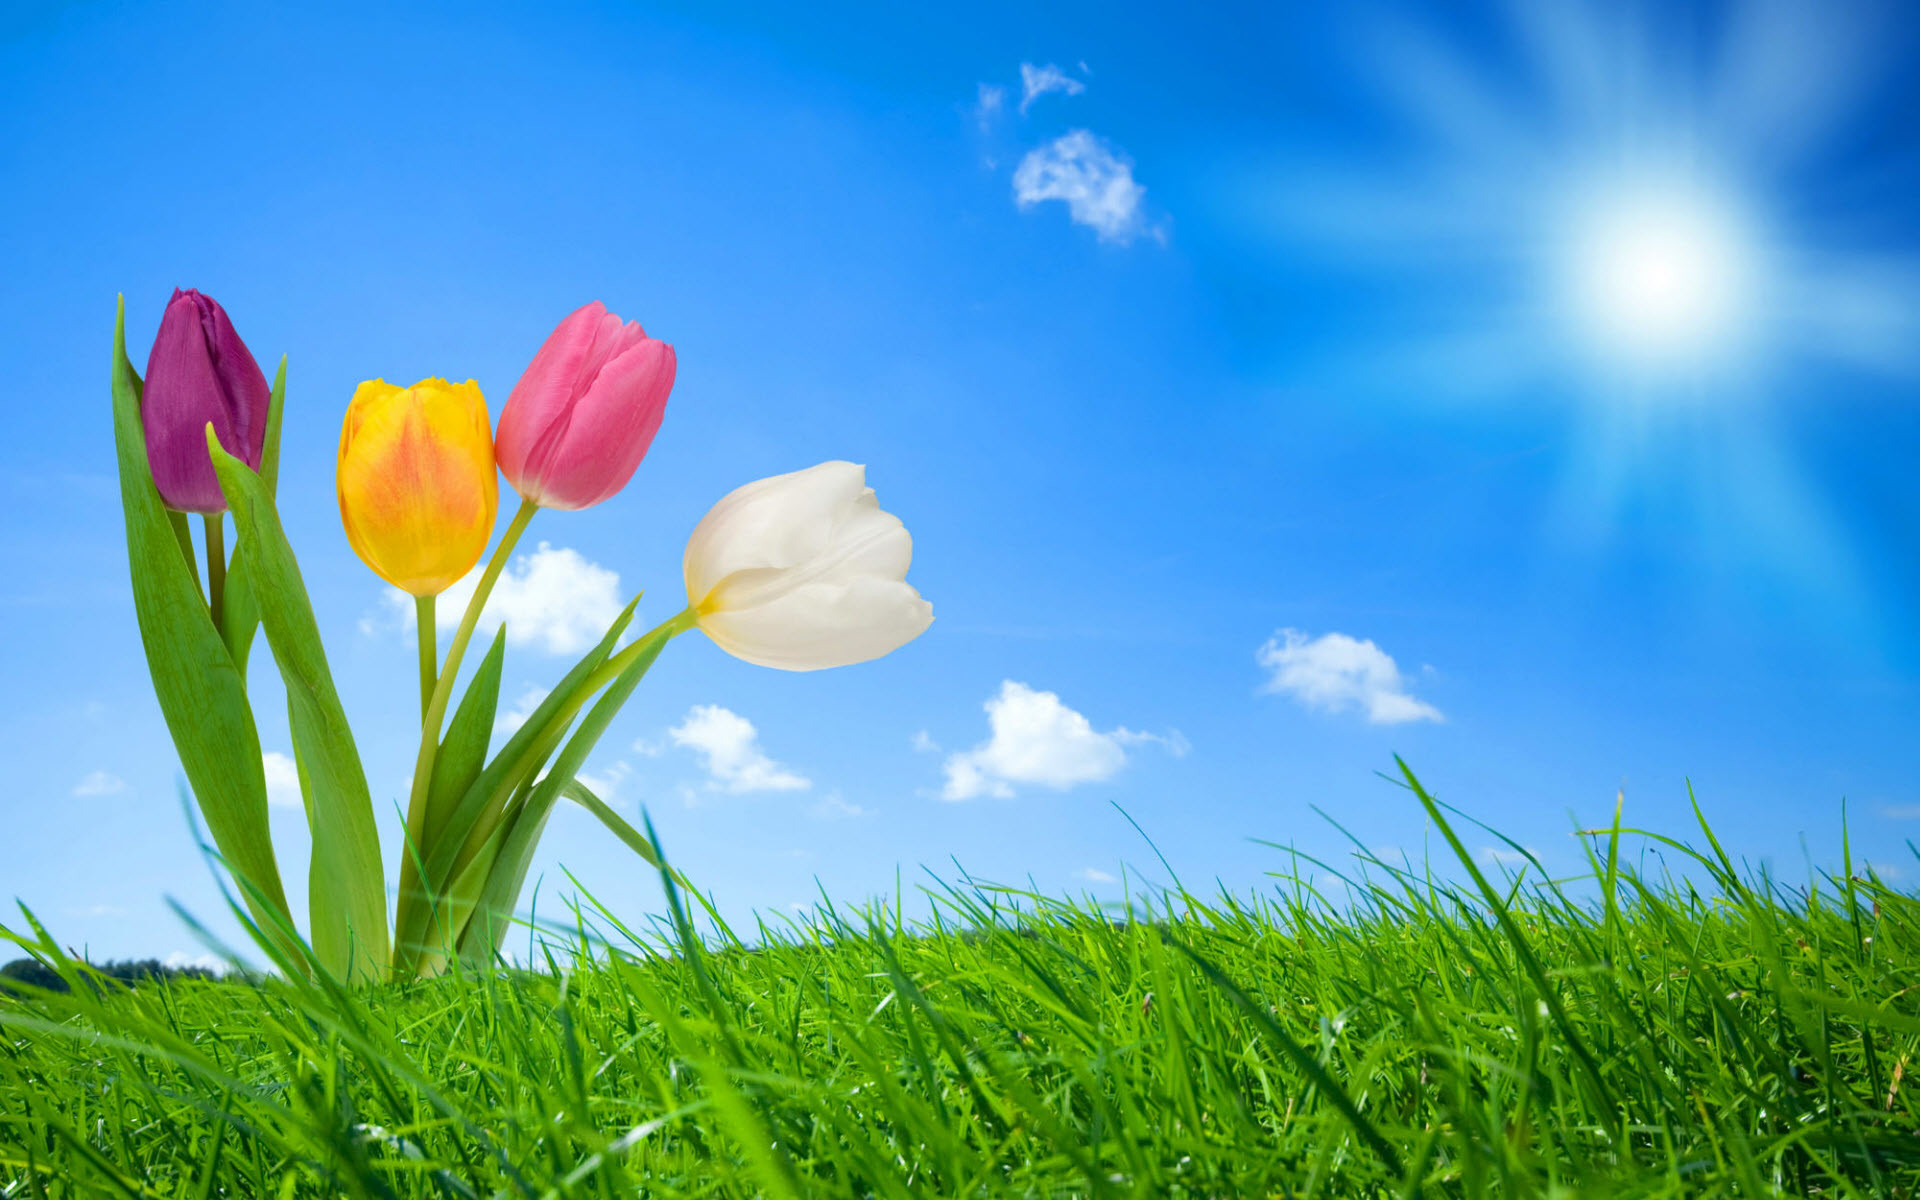 1920x1200 Free Spring Wallpaper Backgrounds | 2012 Nature Wallpapers. All images are  copyrighted by their .